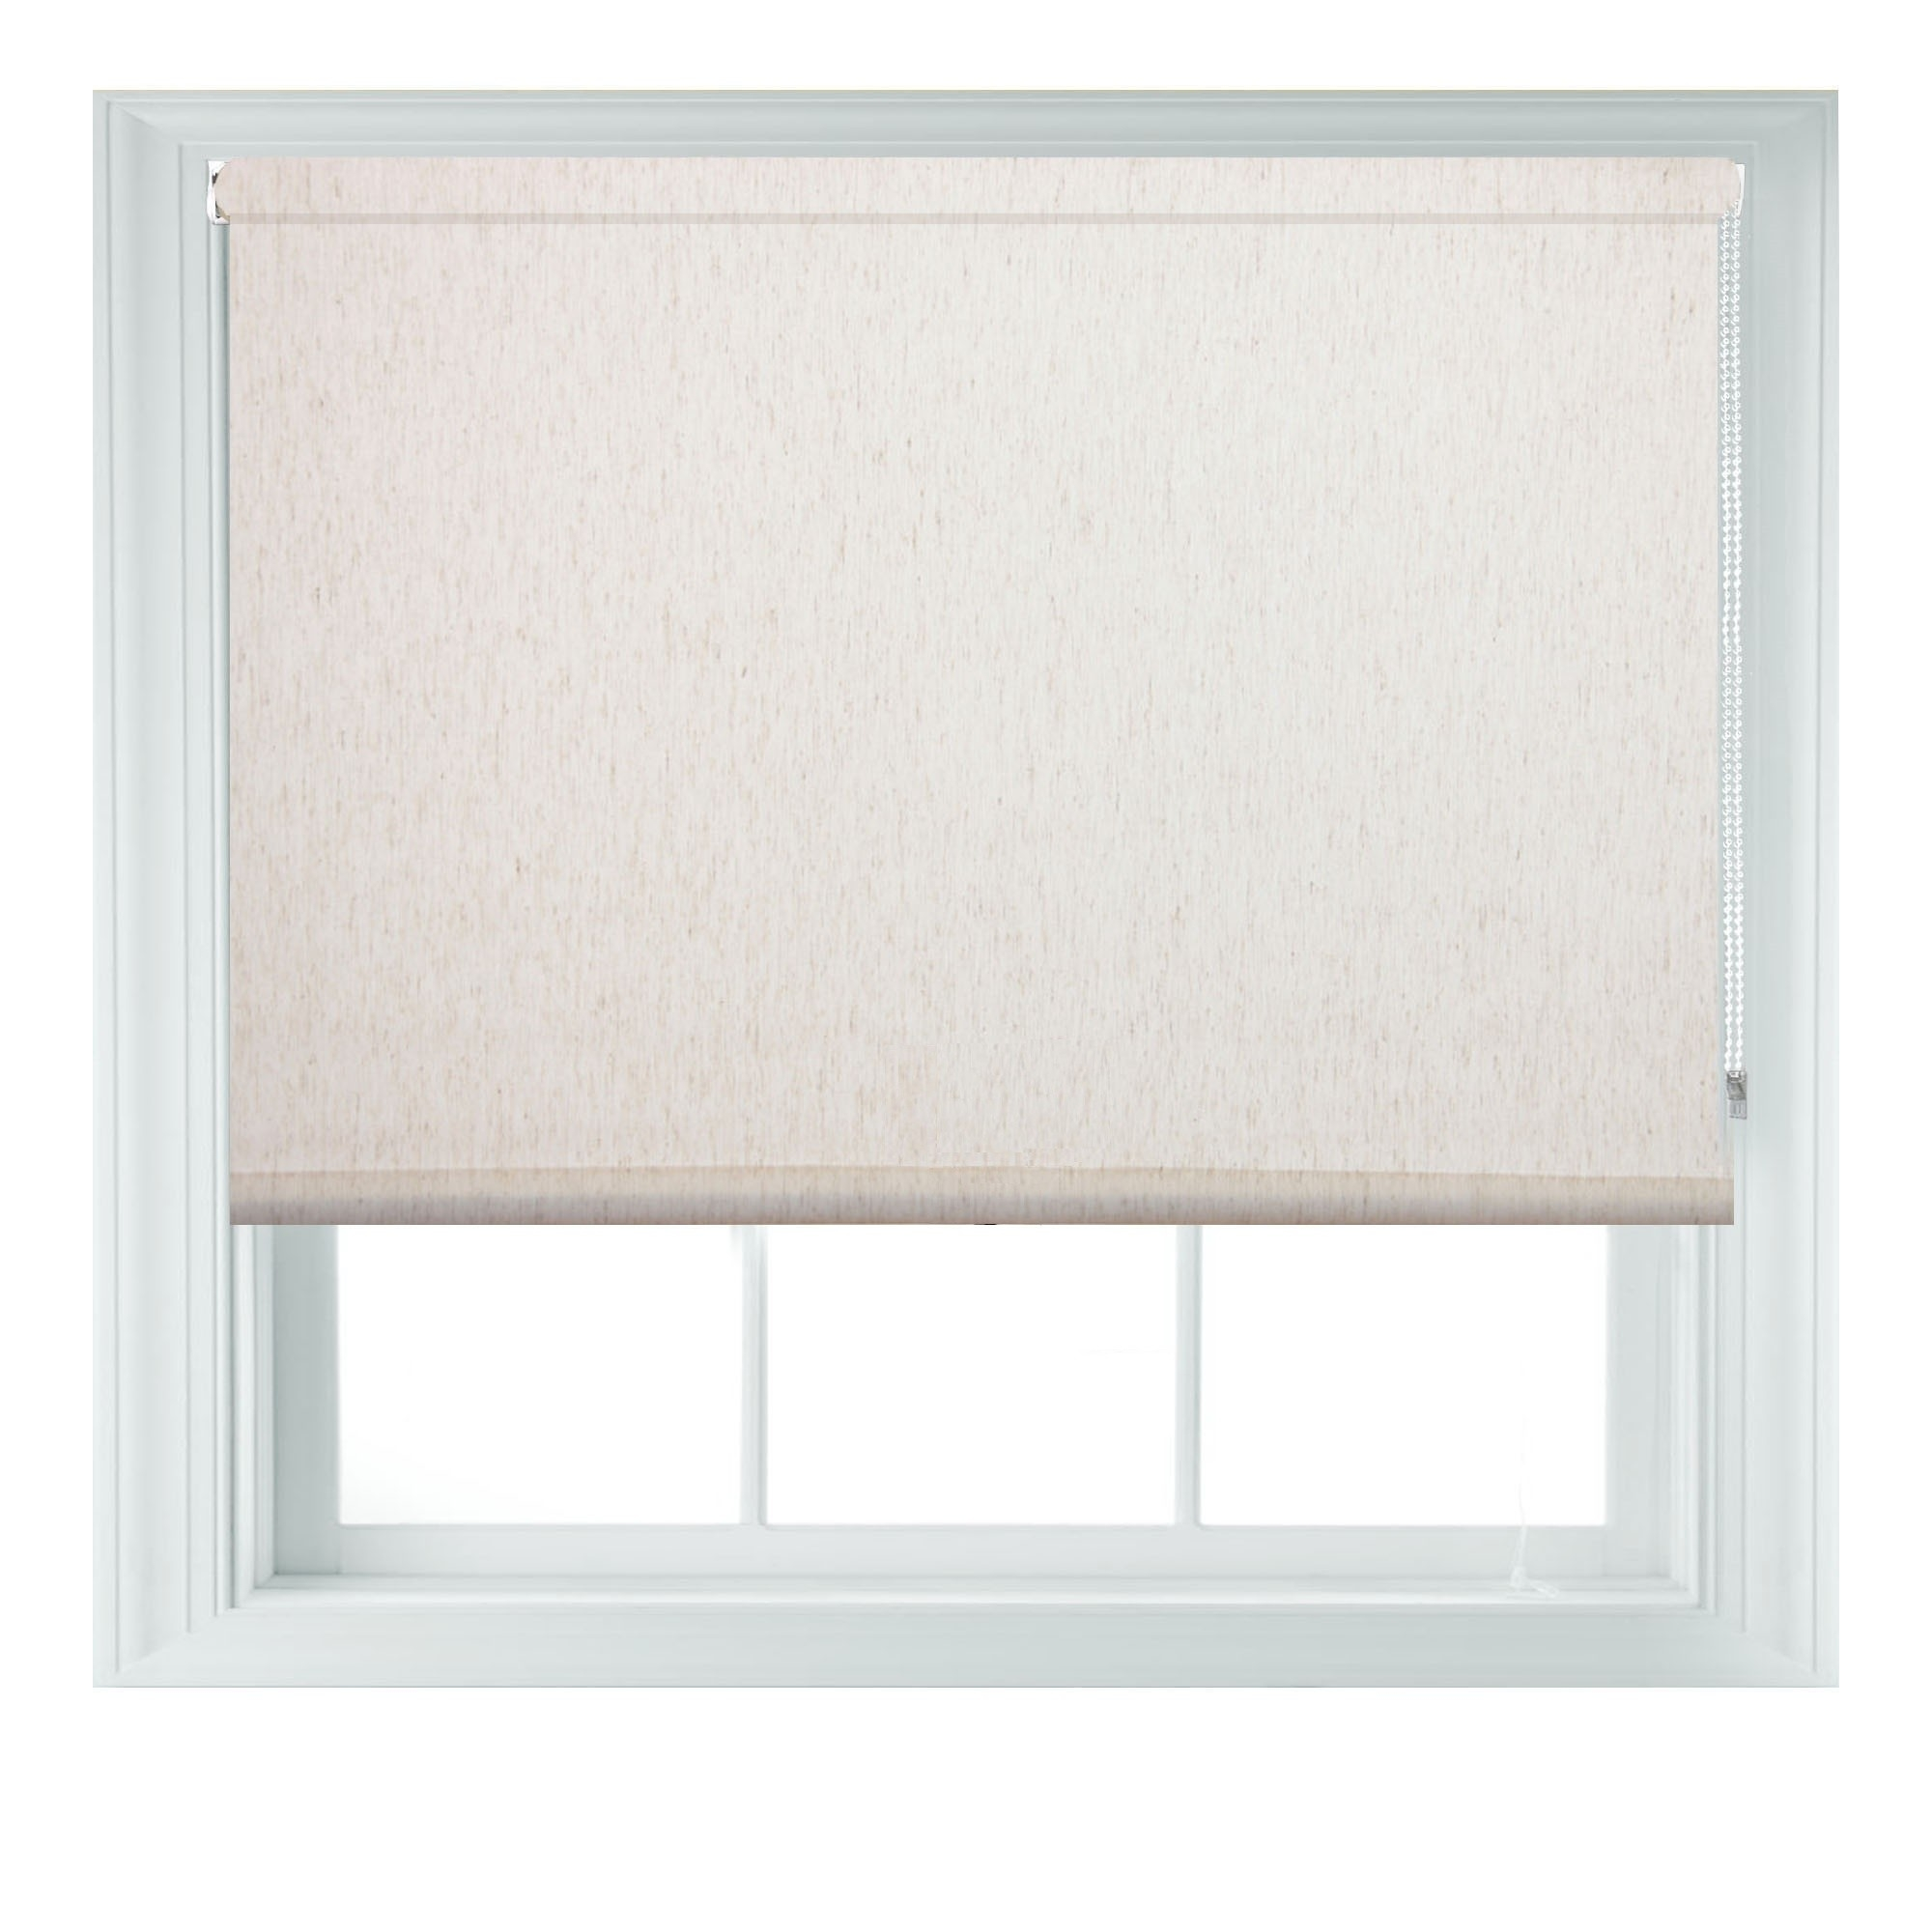 Natural Beige Linen Roller Blinds Quality Window Blind Free Cut Pertaining To Linen Roller Blind (Image 9 of 15)